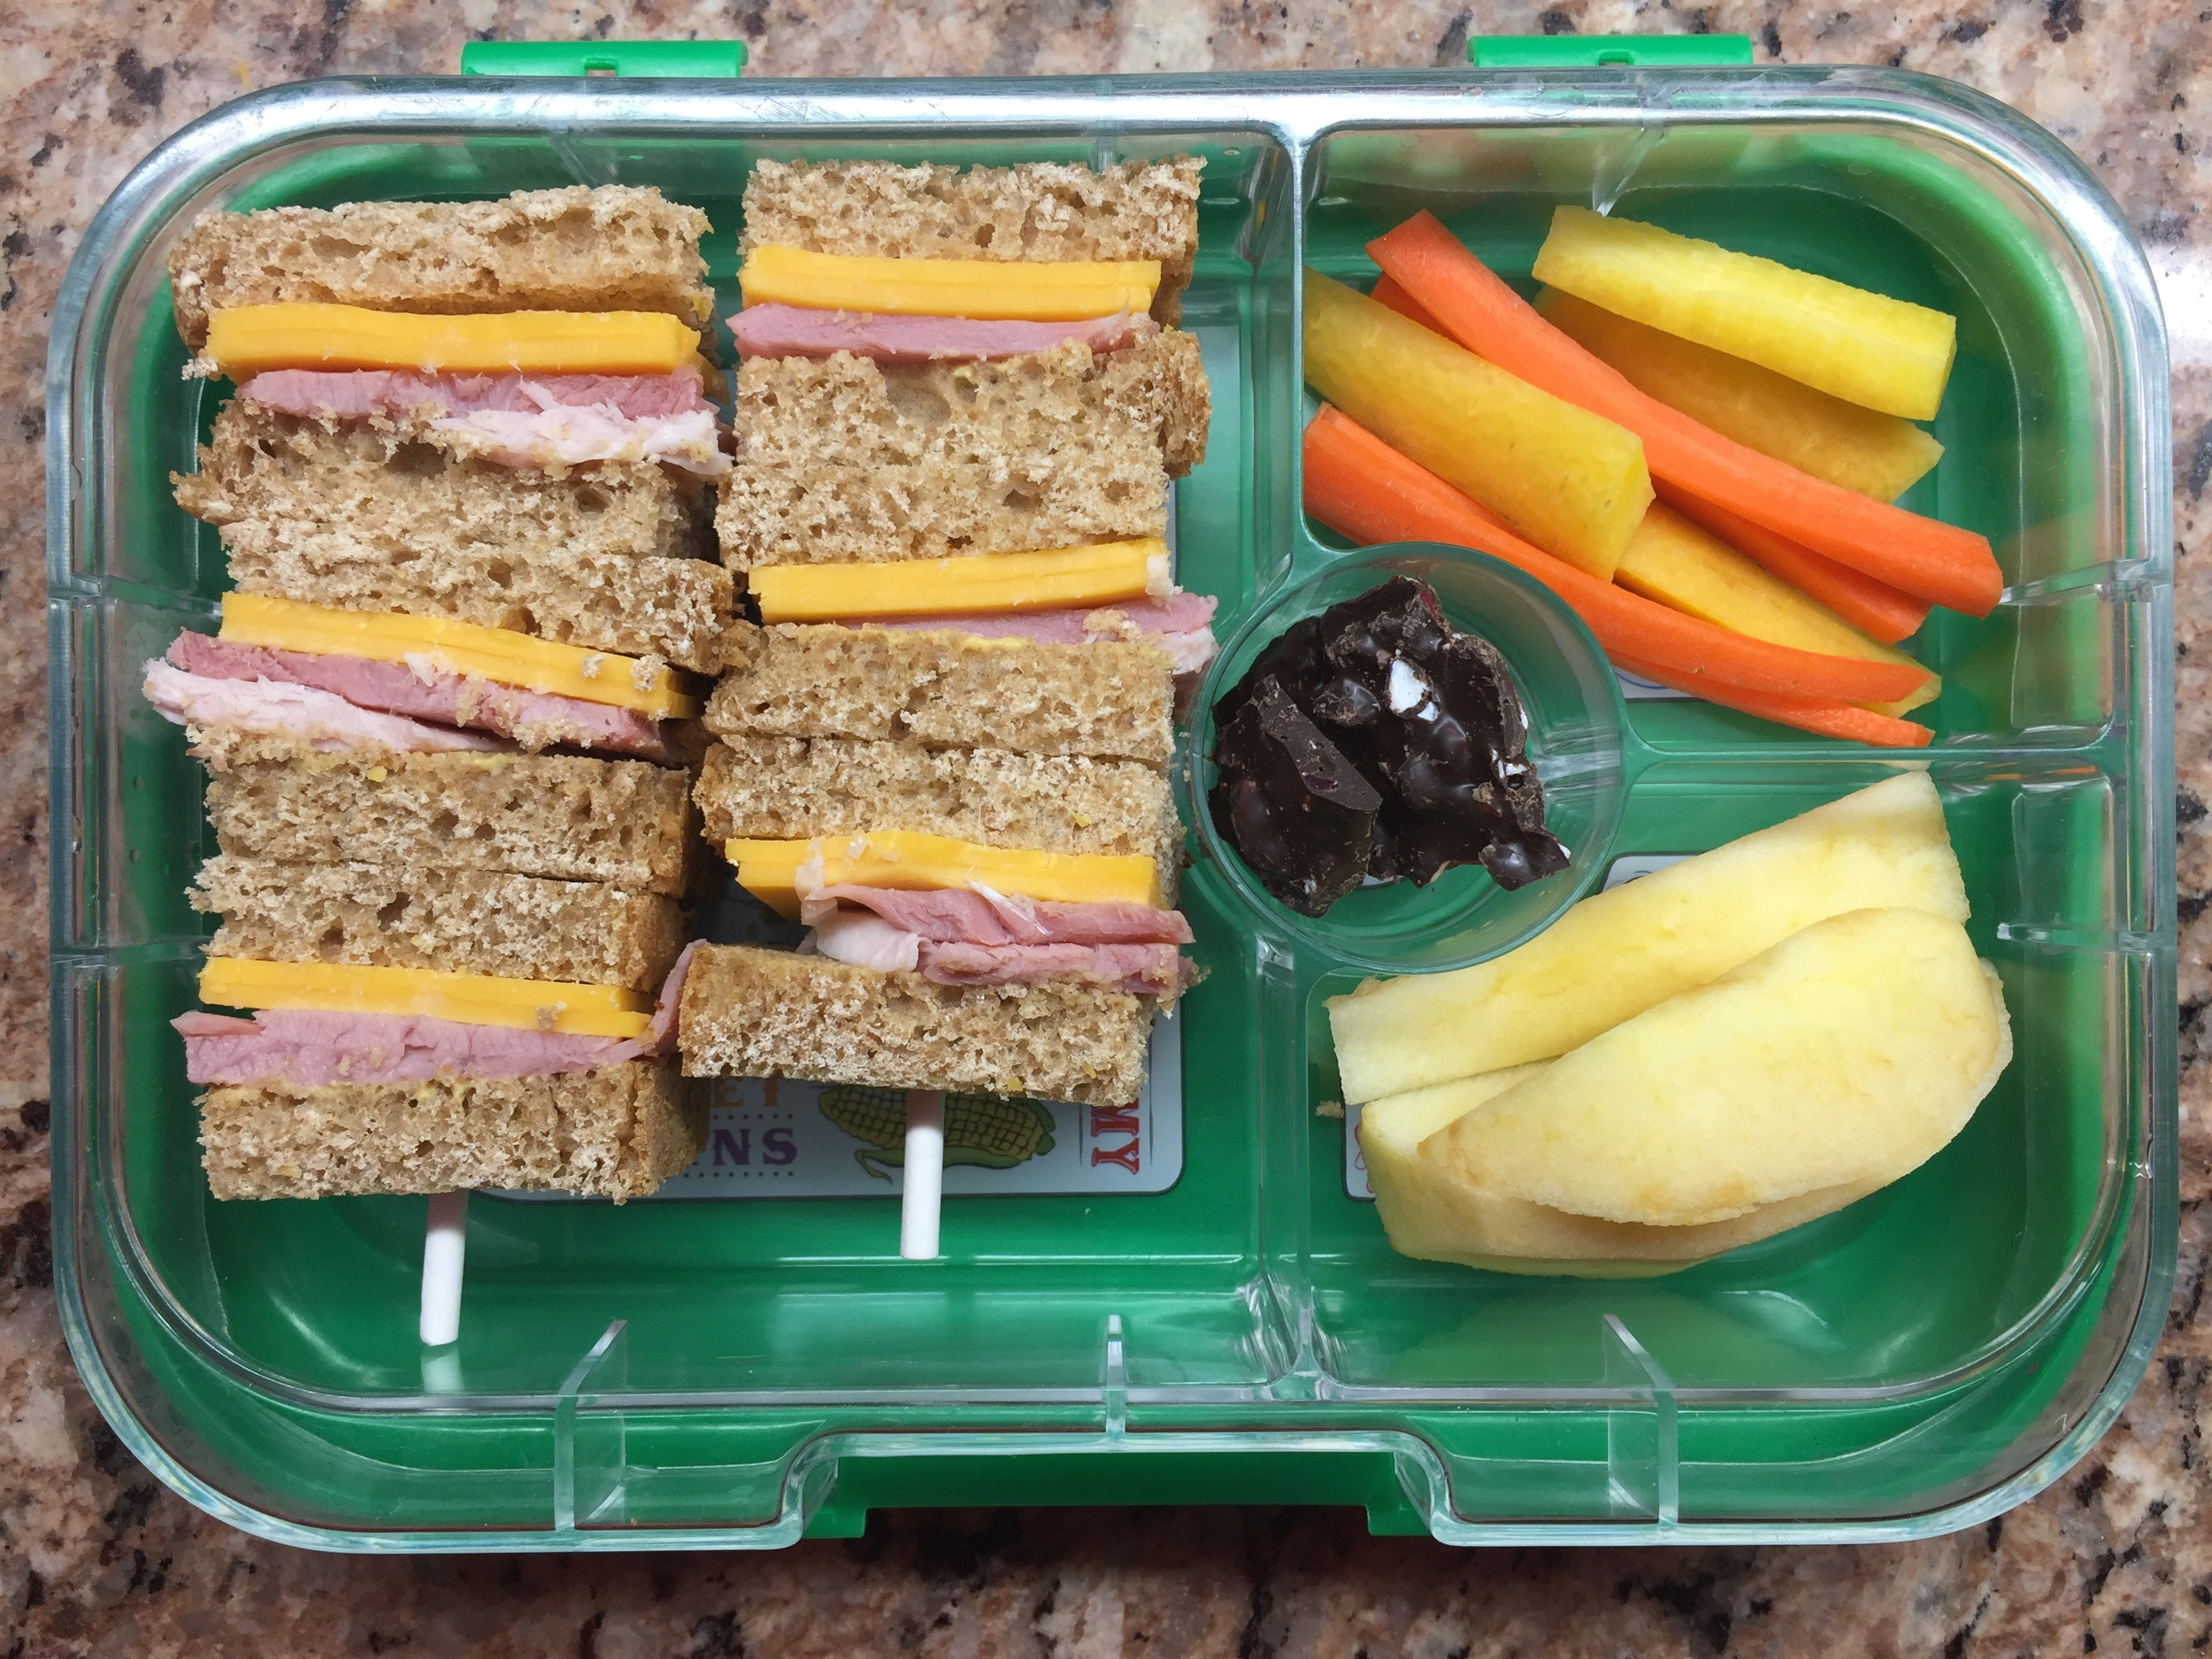 ham and cheese sandwich kebabs, carrot sticks, apple, dark chocolate with mint